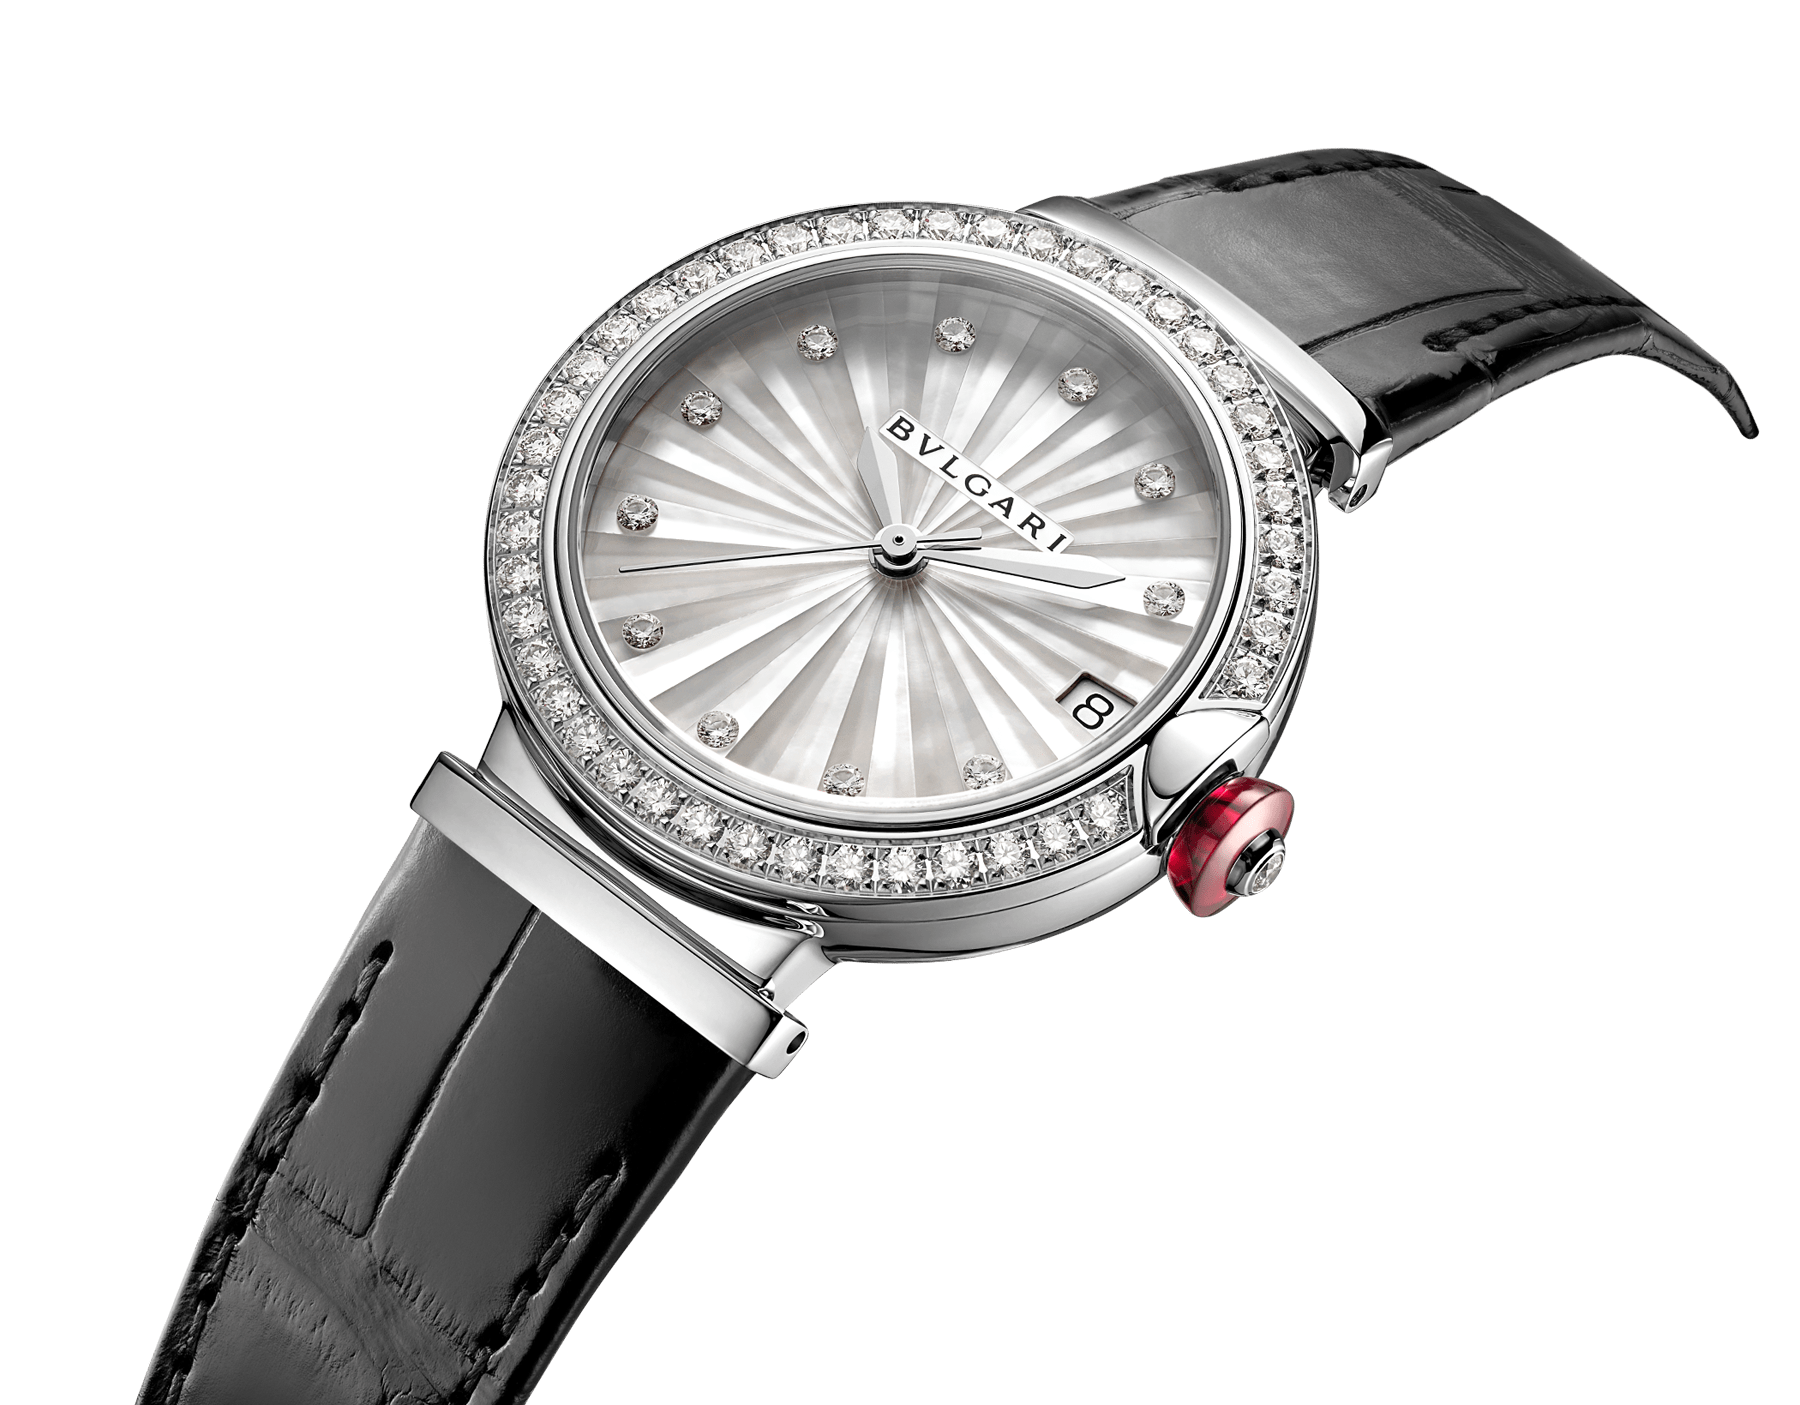 LVCEA watch with polished stainless steel case set with diamonds, white mother-of-pearl intarsia marquetry dial, 11 diamond indexes and black alligator bracelet 103476 image 2